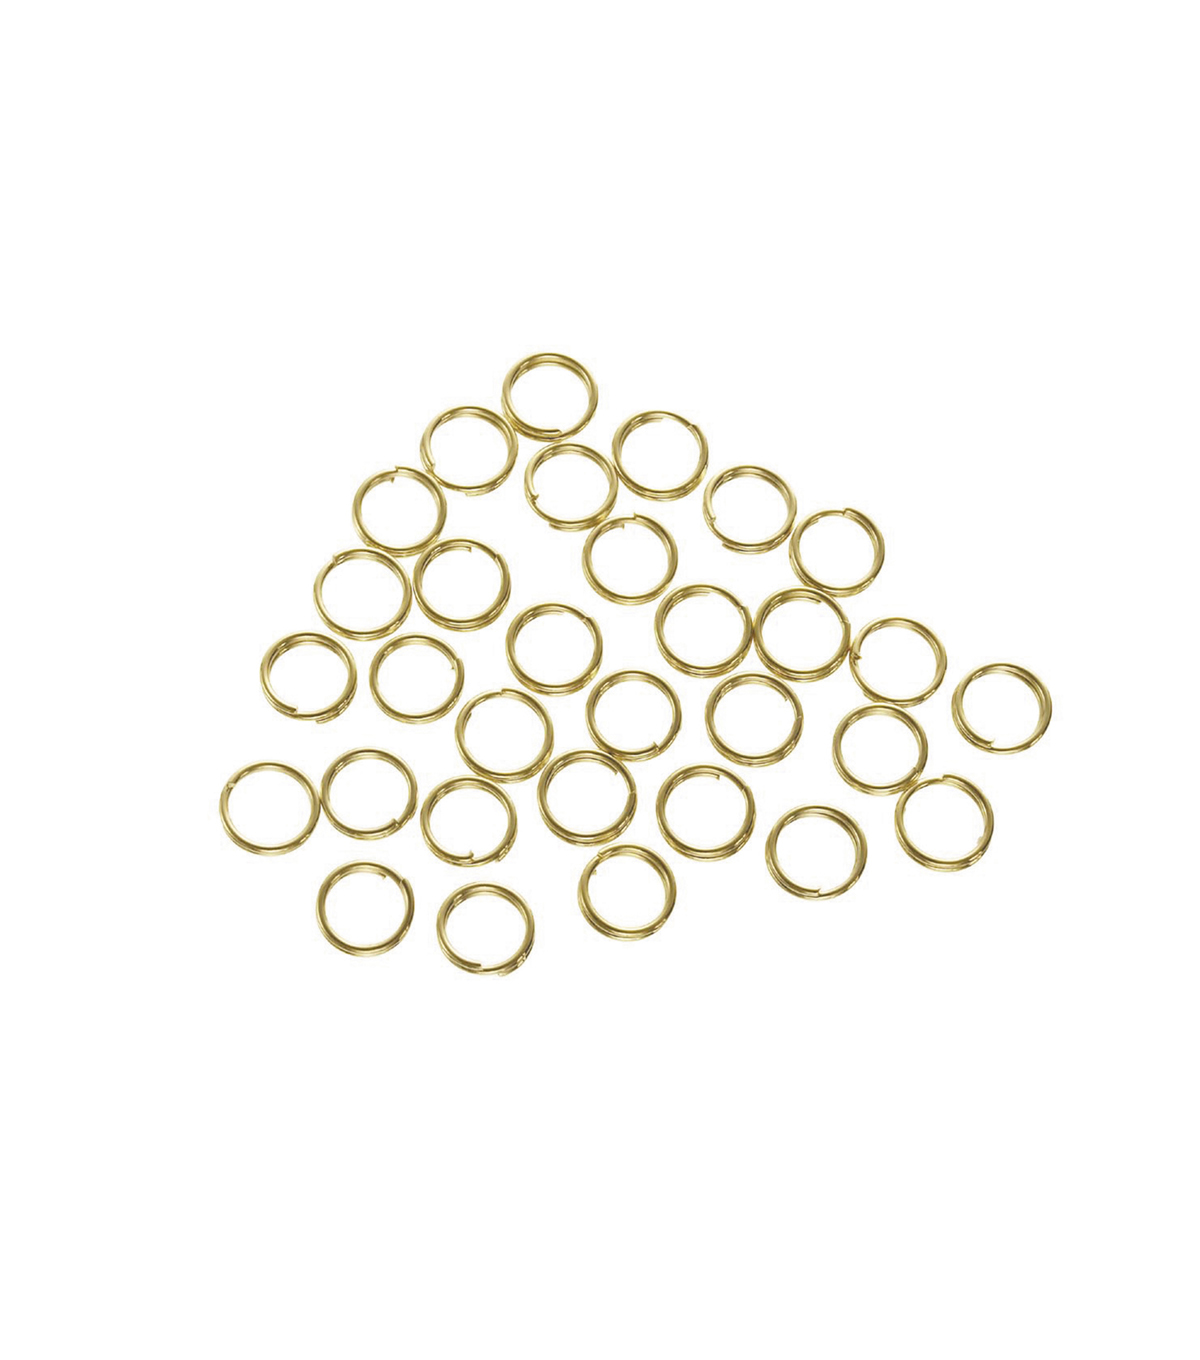 6mm Brass Double Ring Gold Finish